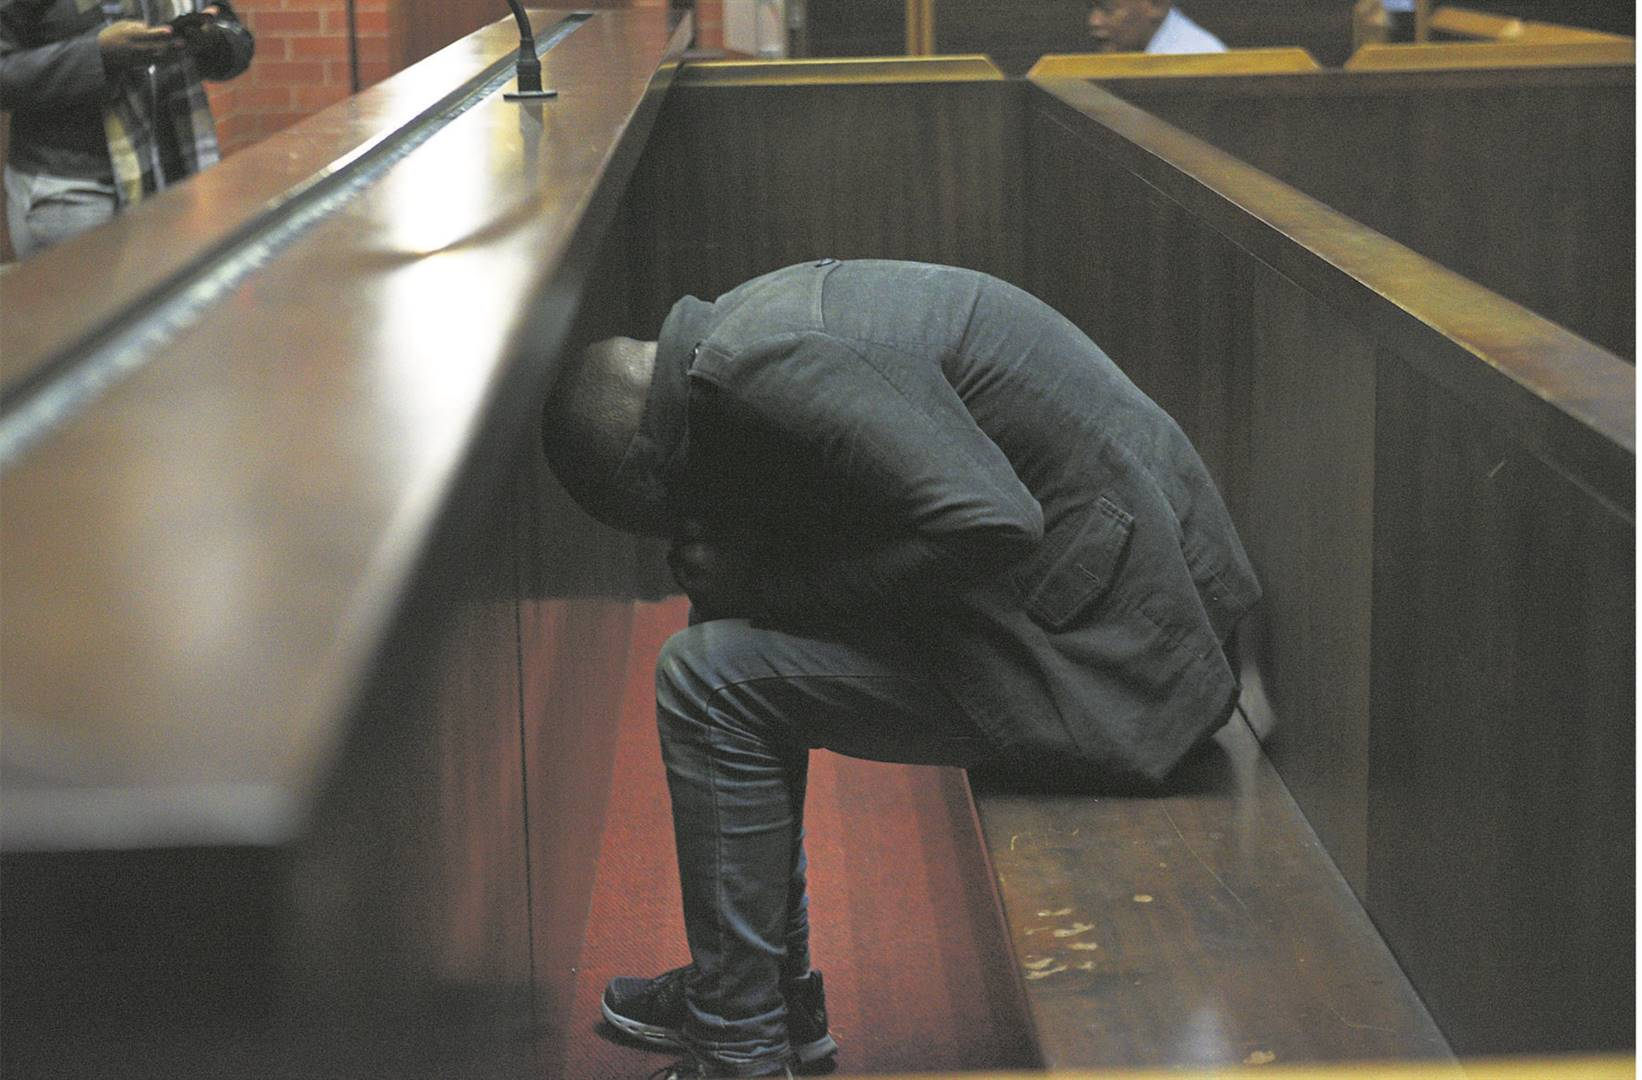 Msizi Mbotho tried his best to avoid being photographed yesterday in the Pietermaritzburg high court where he was sentenced to life imprisonment. He killed DUT student Sandile Ndhlovu at the Berea Campus.Msizi Mbotho tried his best to avoid being photographed yesterday in the Pietermaritzburg high court where he was sentenced to life imprisonment for killing DUT student Sandile Ndhlovu. PHOTO: Moeketsi Mamane